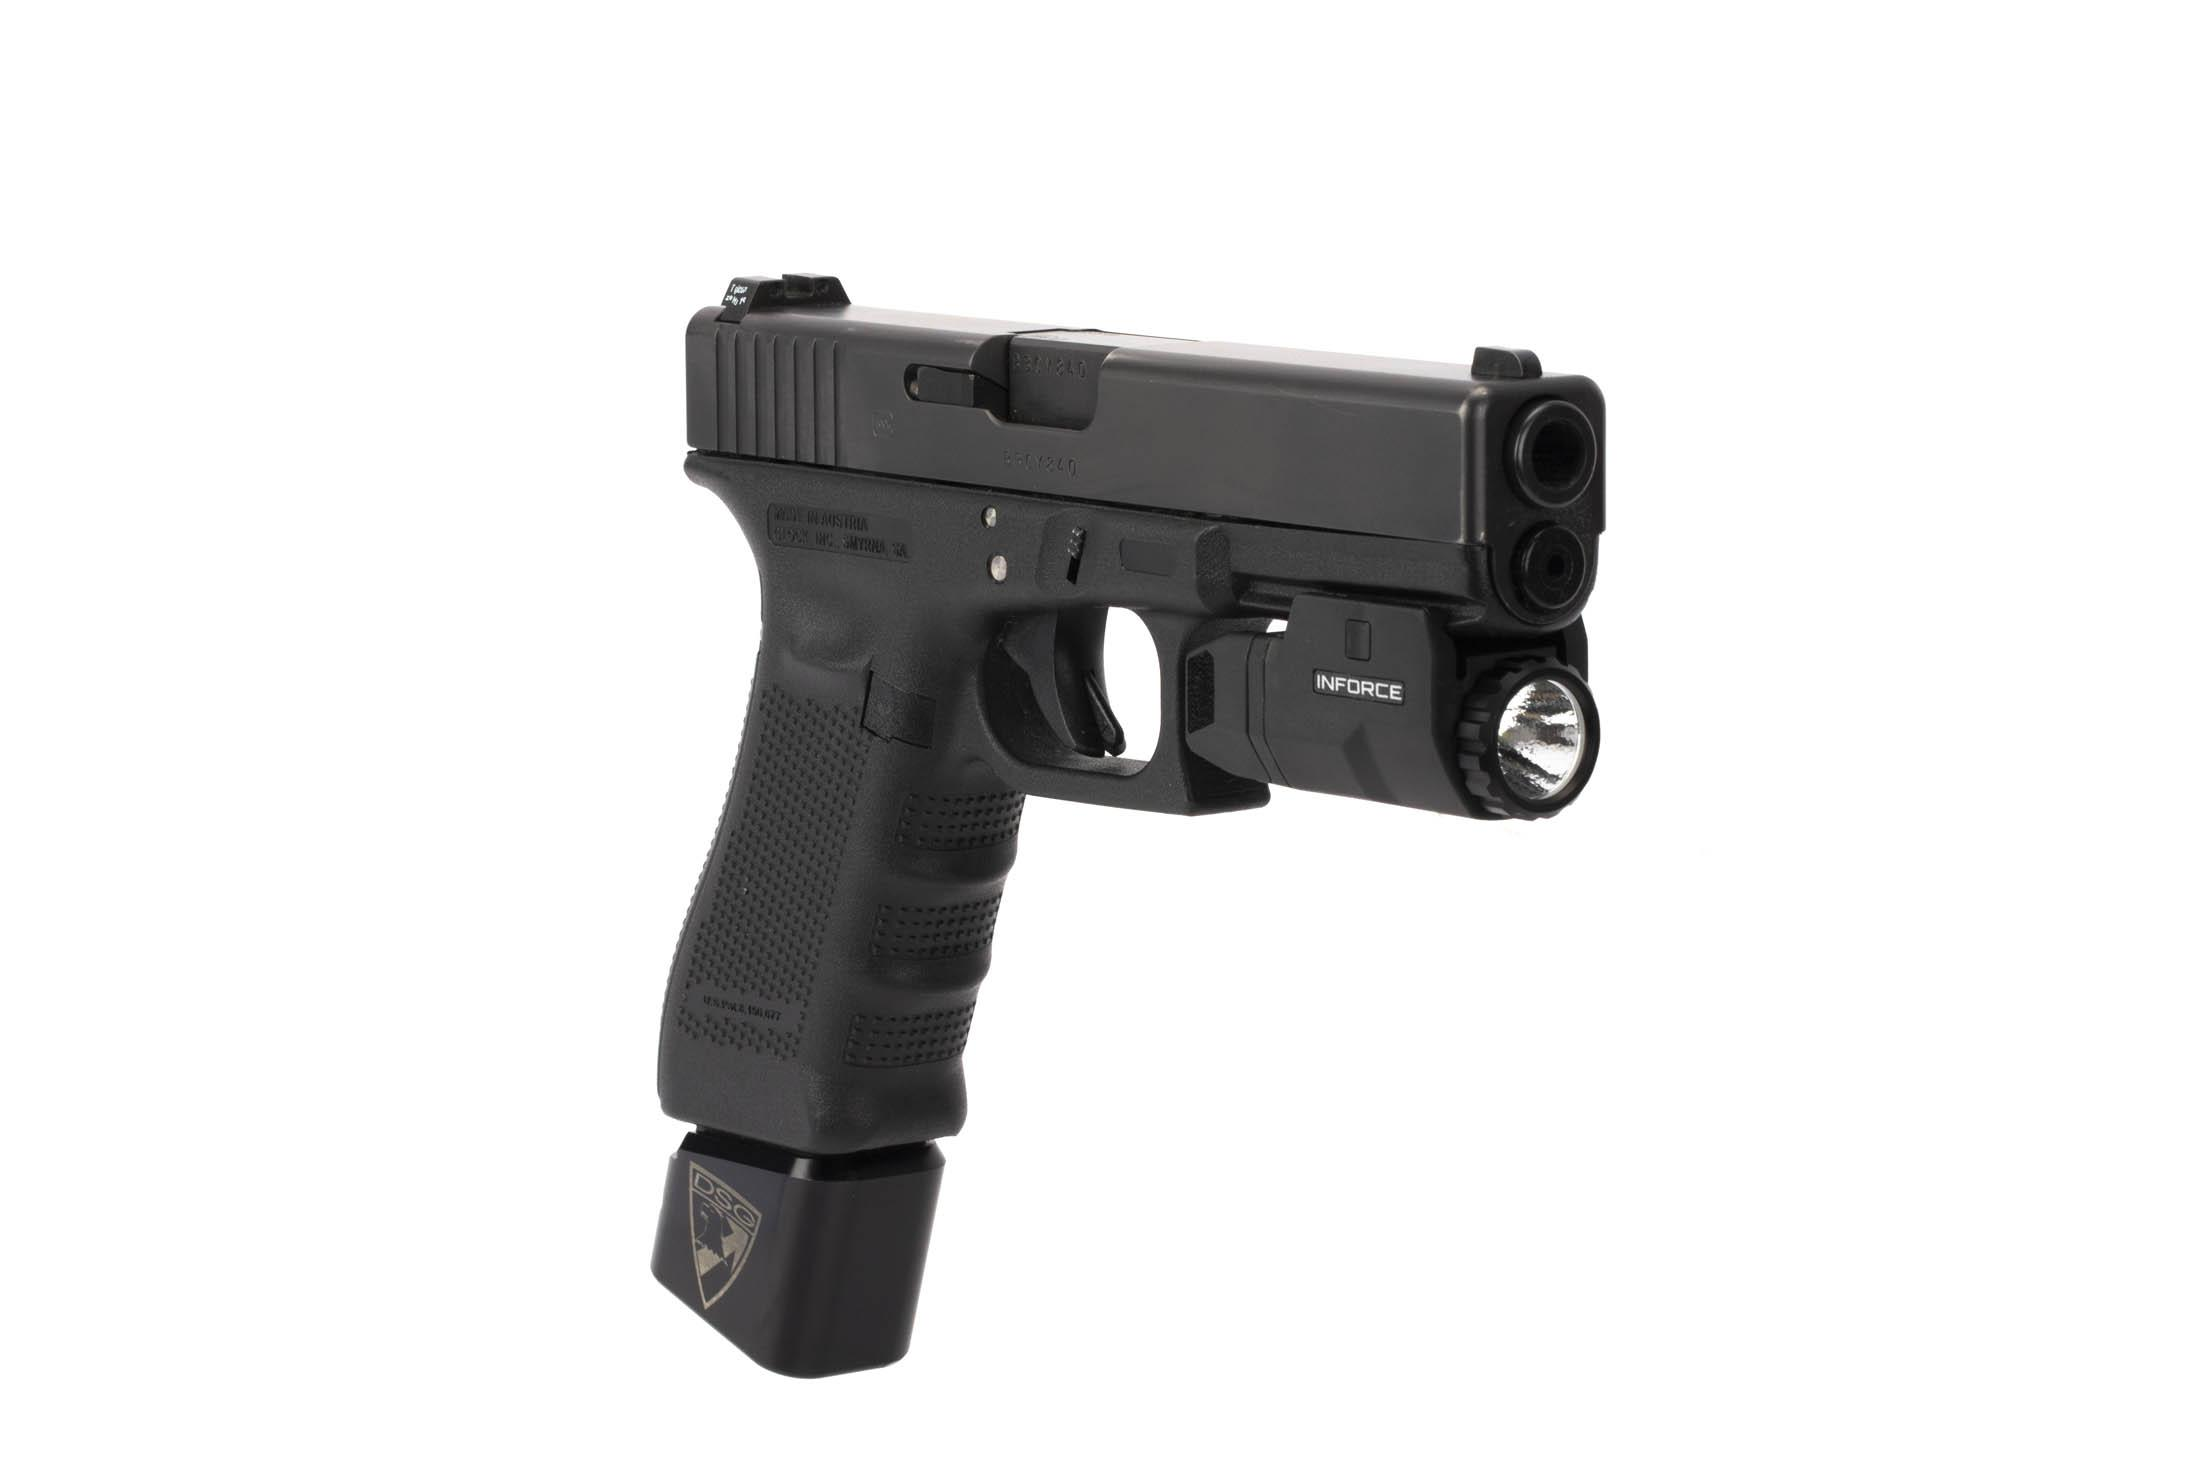 The Inforce APL Compact weapon light is powered by a single CR123A battery for 1.5 hours of runtime